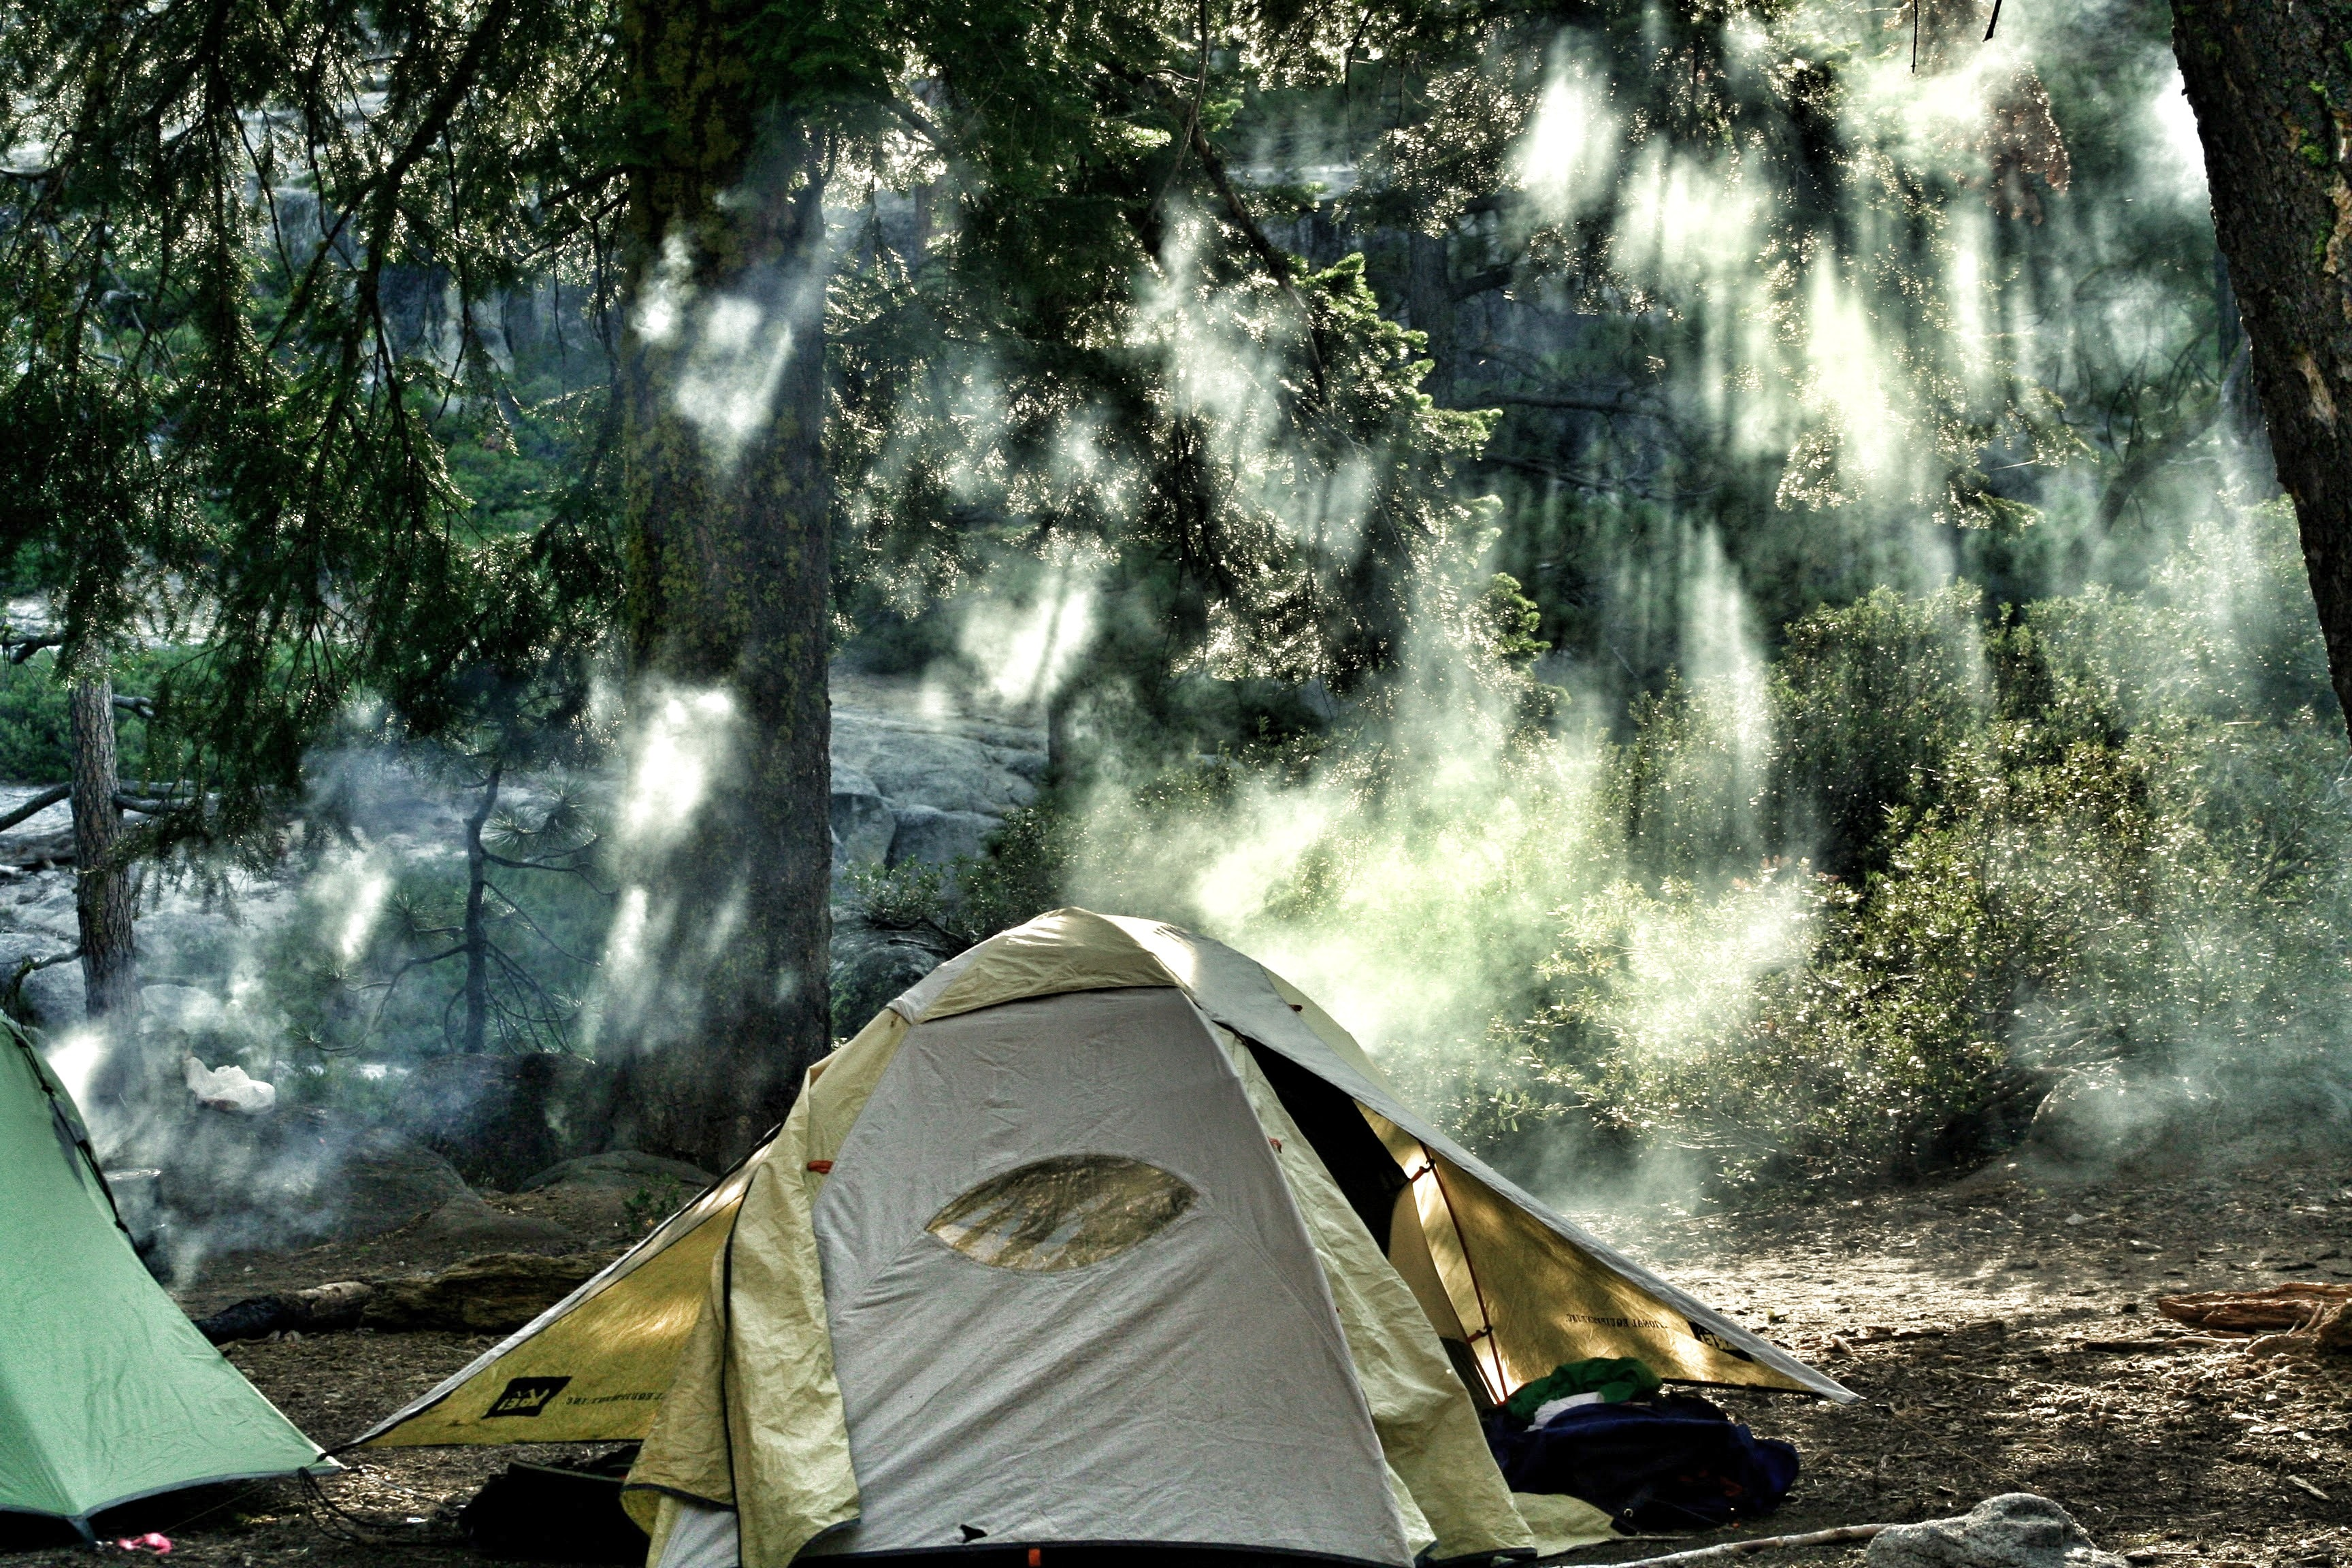 white and yellow camping tent in the middle of forest